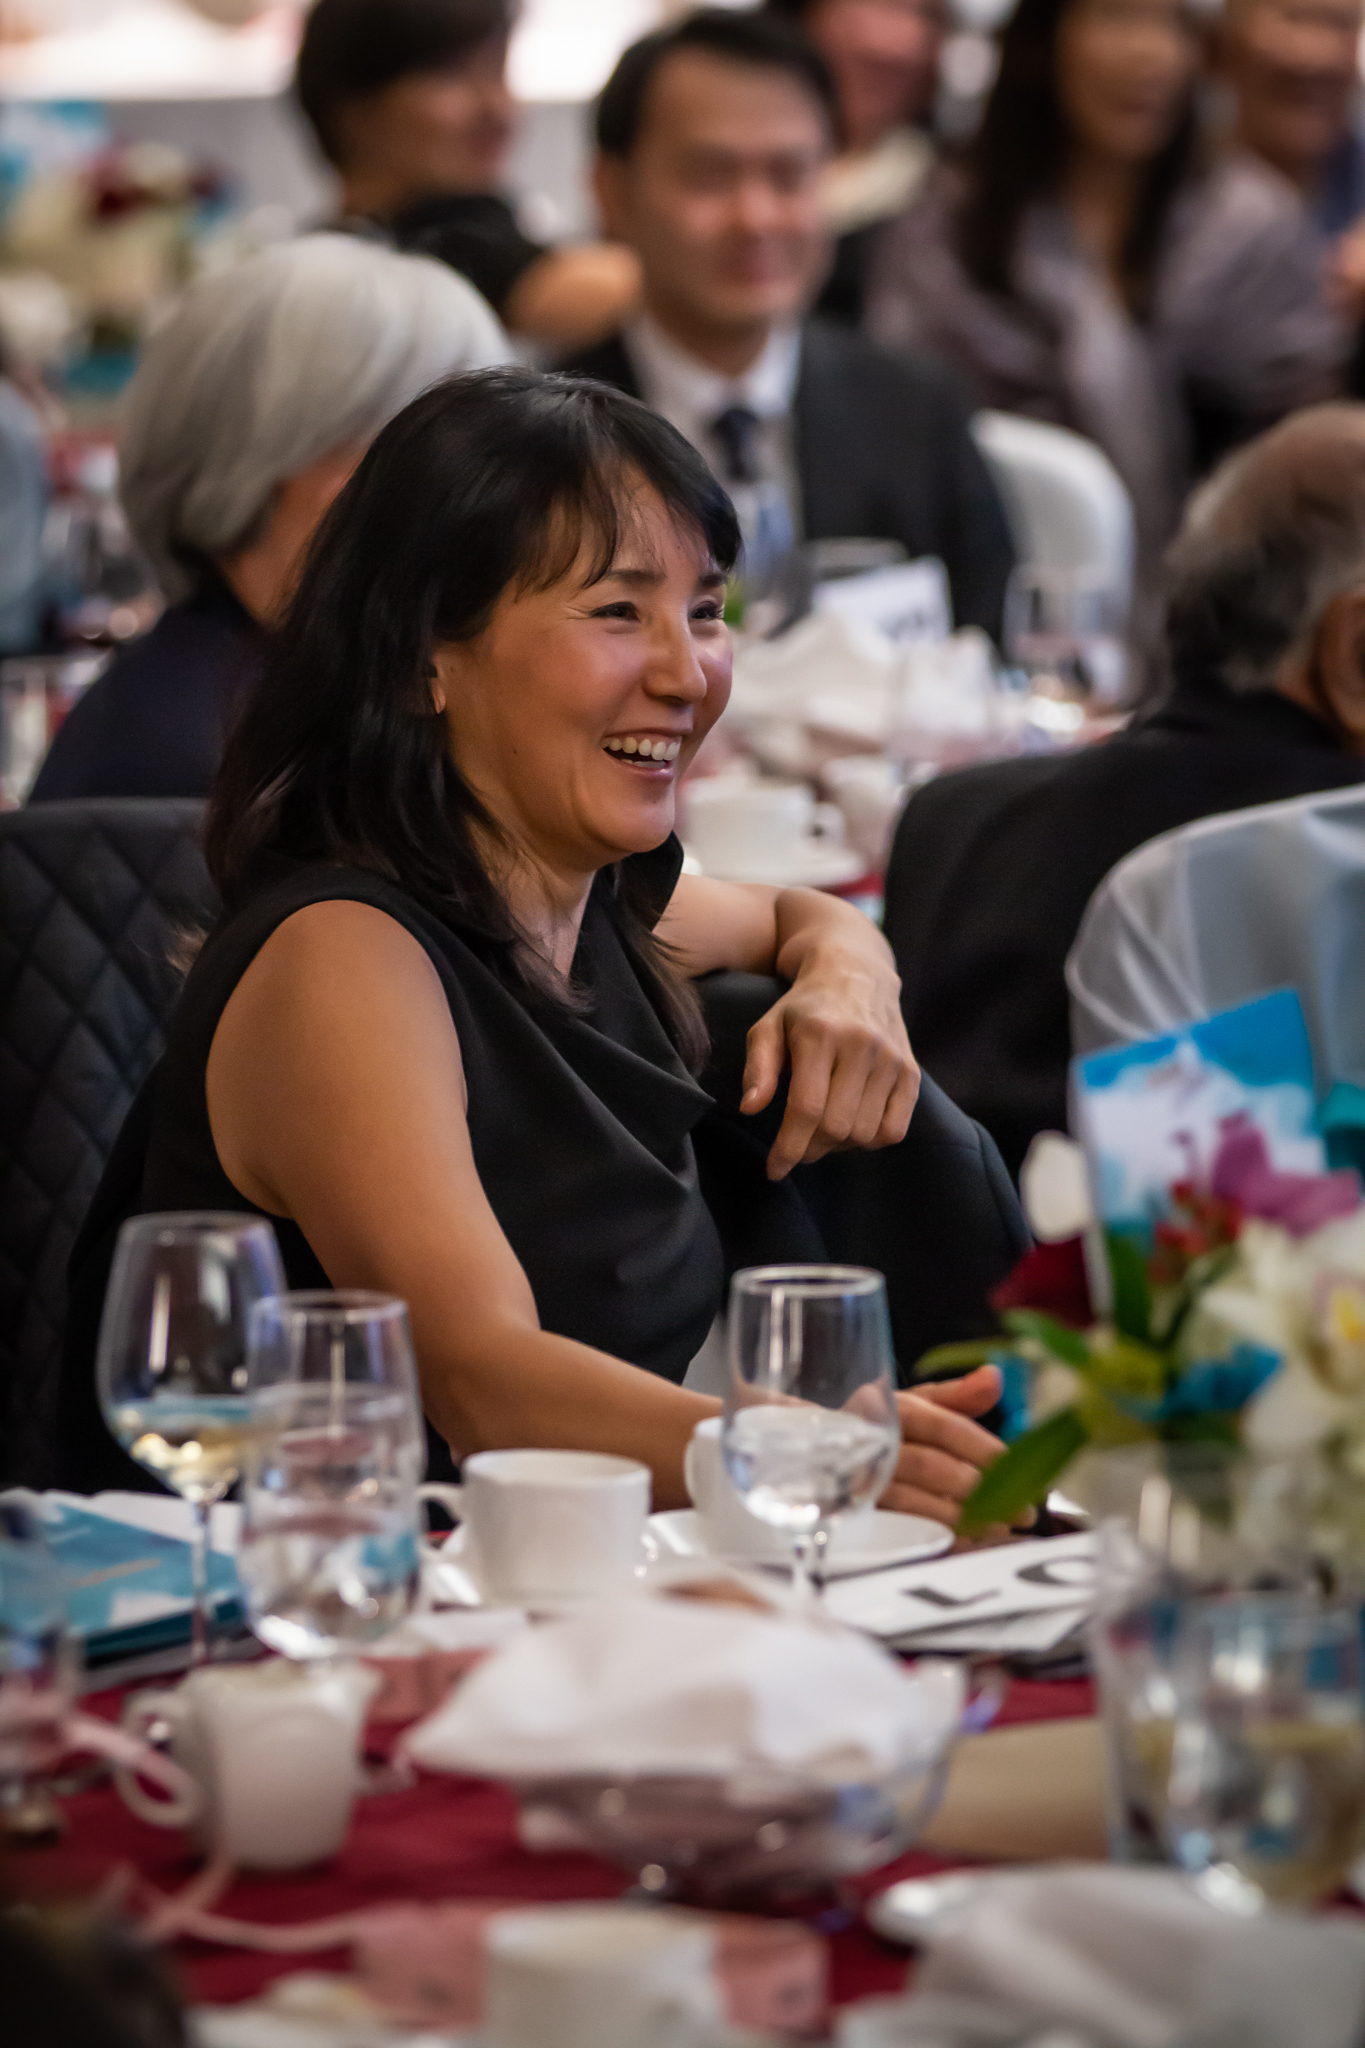 190310 Sakura Gala 2019 19-45-37 - Photo by Adam PW Smith.jpg